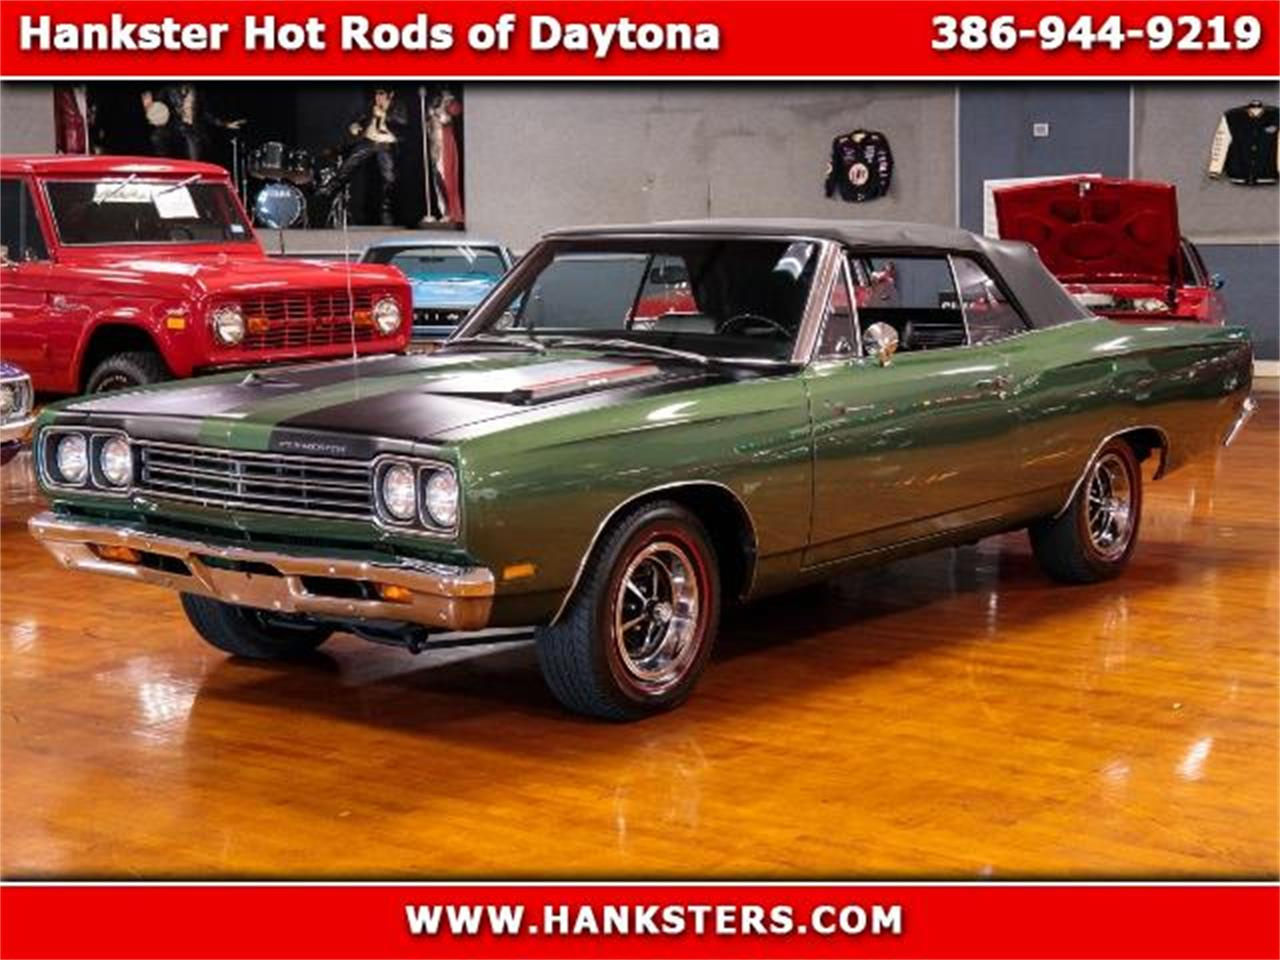 Fuel Diagram 1969 Plymouth Roadrunner Electrical Wiring Diagrams 70 Road Runner For Sale Classiccars Com Cc 1093861 1970 Superbird